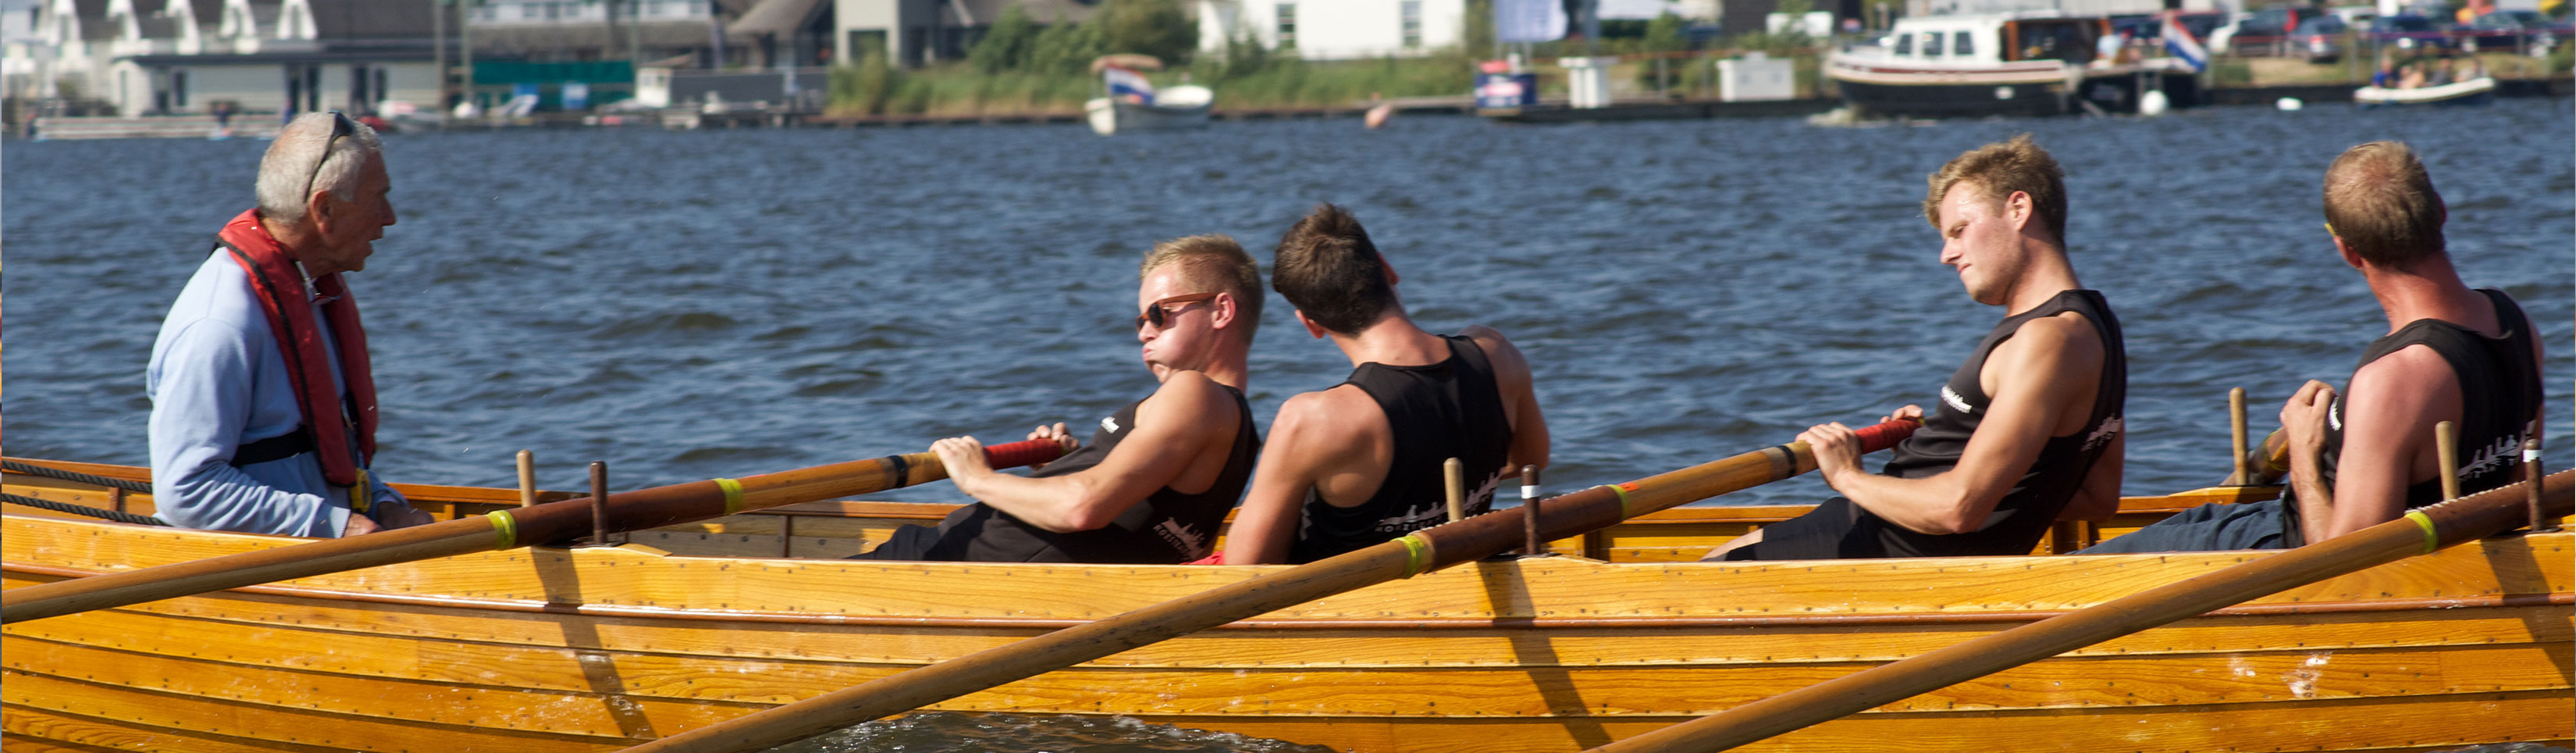 Programma City Row Race 2018 *NK-nominatie*